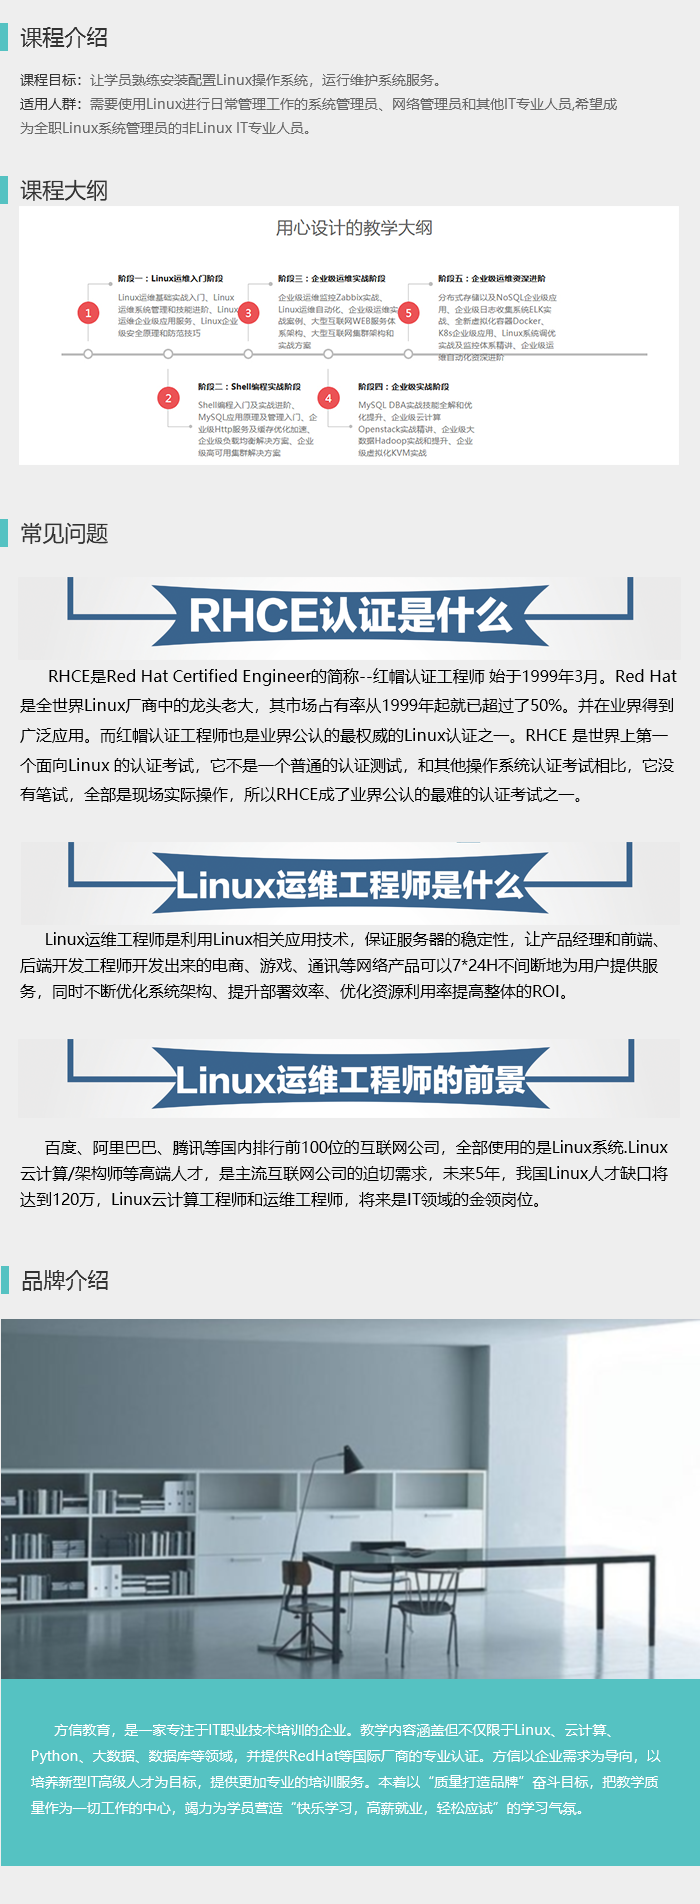 Linux运维-51cto.png